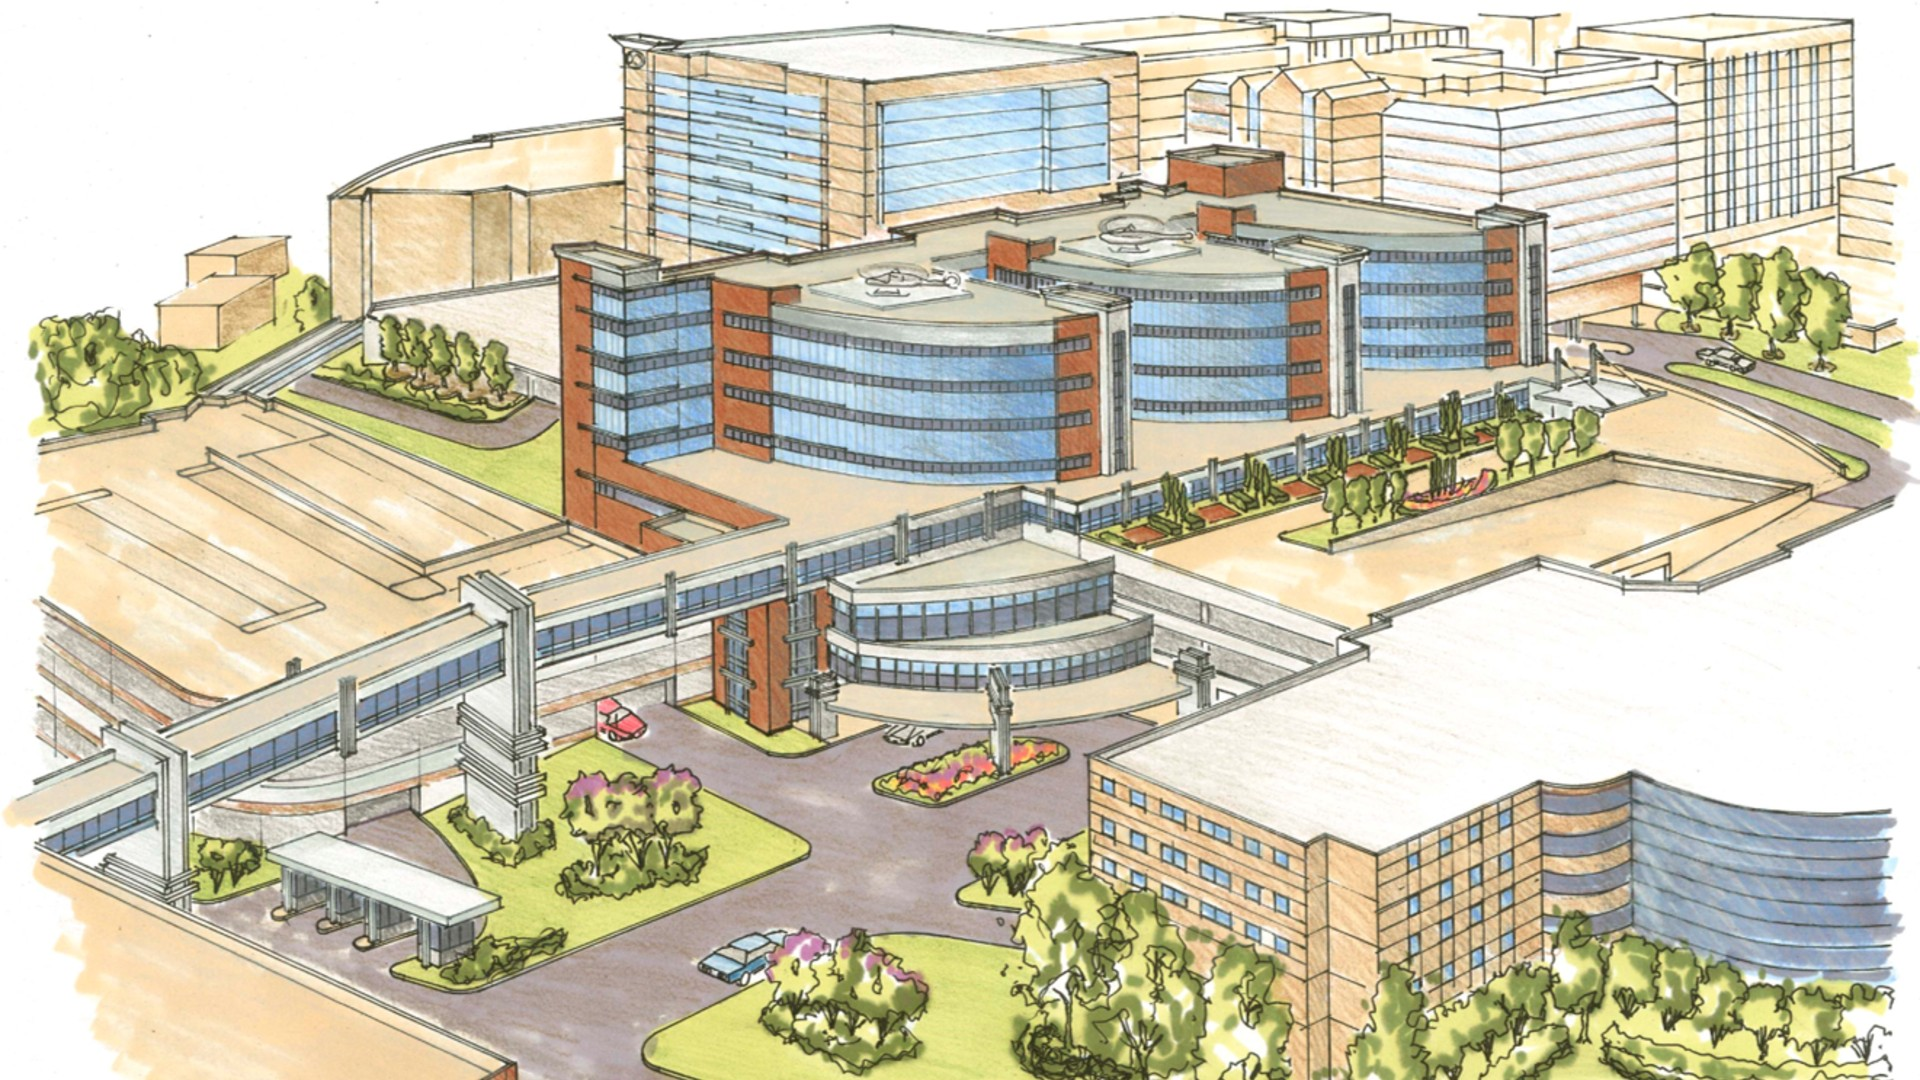 A rendering of a new care tower at Wake Forest Baptist Medical Center which represents expanded access to critical services to the Winston-Salem community.